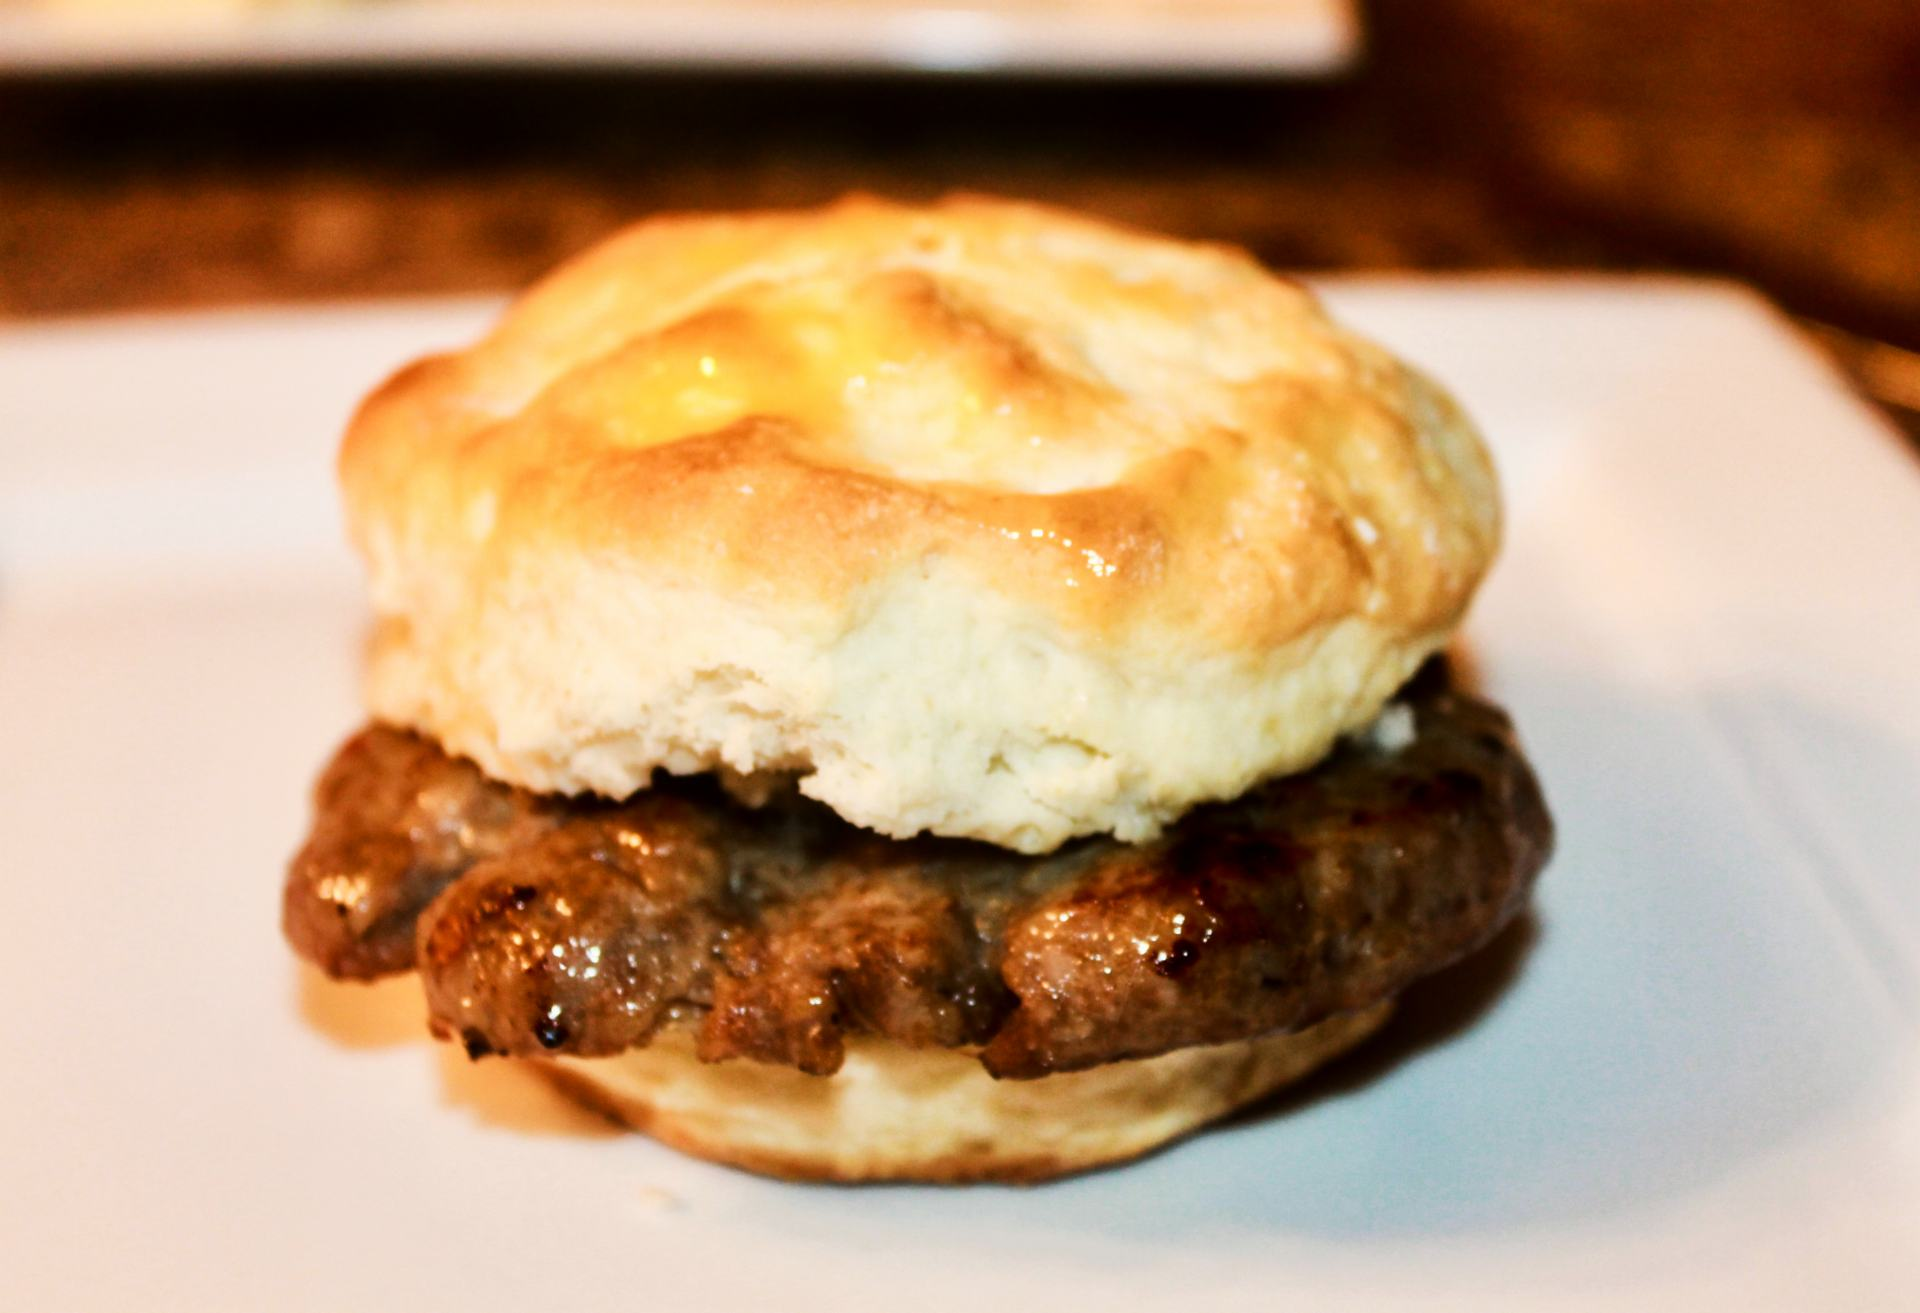 How to make a Sausage biscuit from scratch